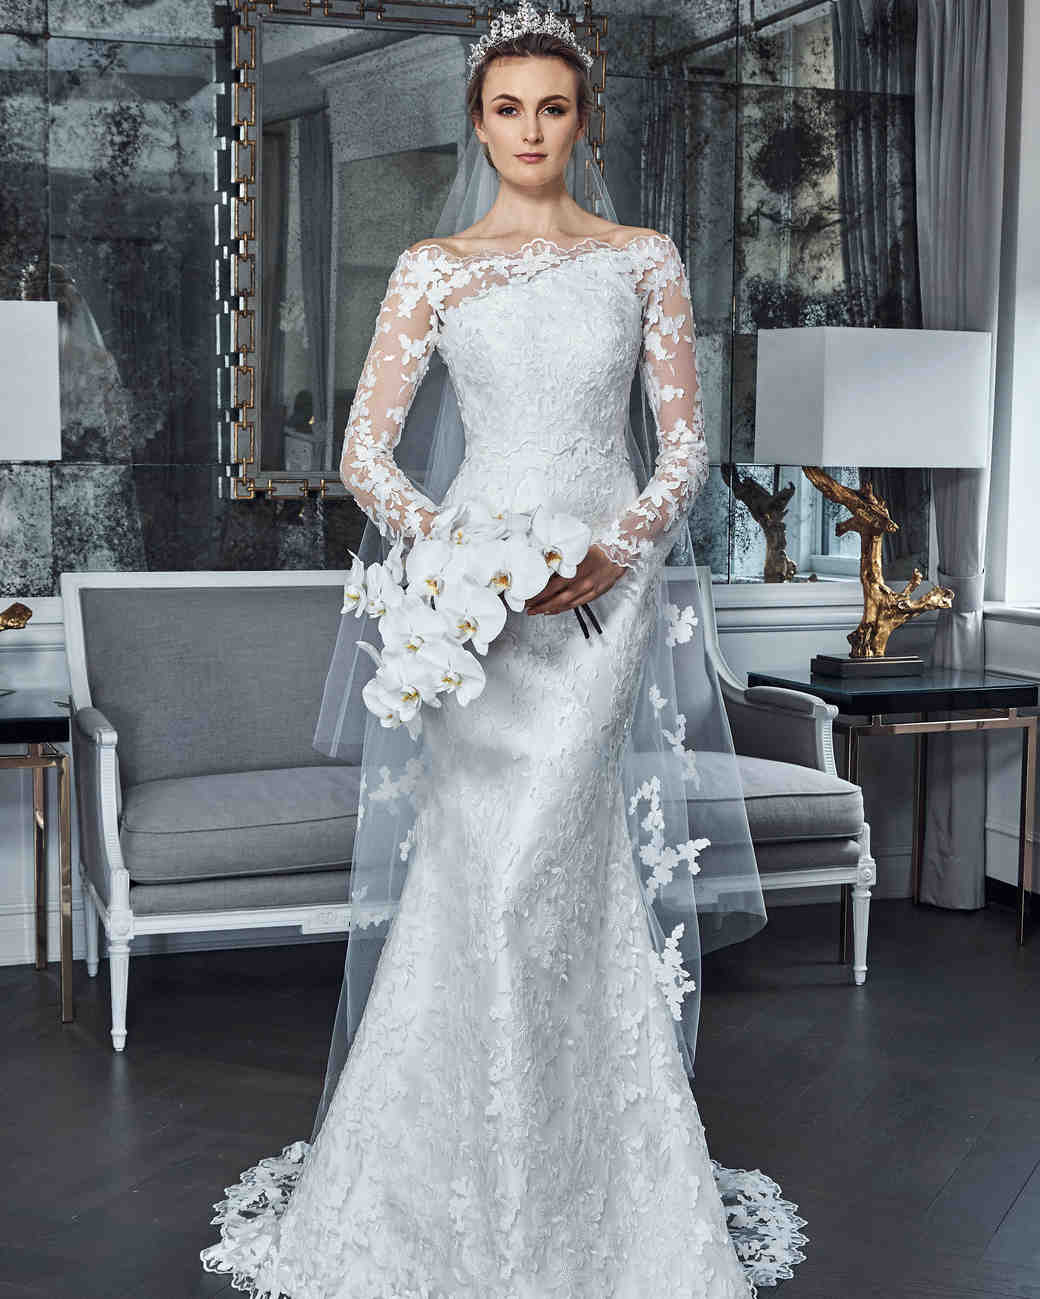 2019 Wedding Dresses With Sleeves: Romona Keveza Spring 2019 Wedding Dress Collection